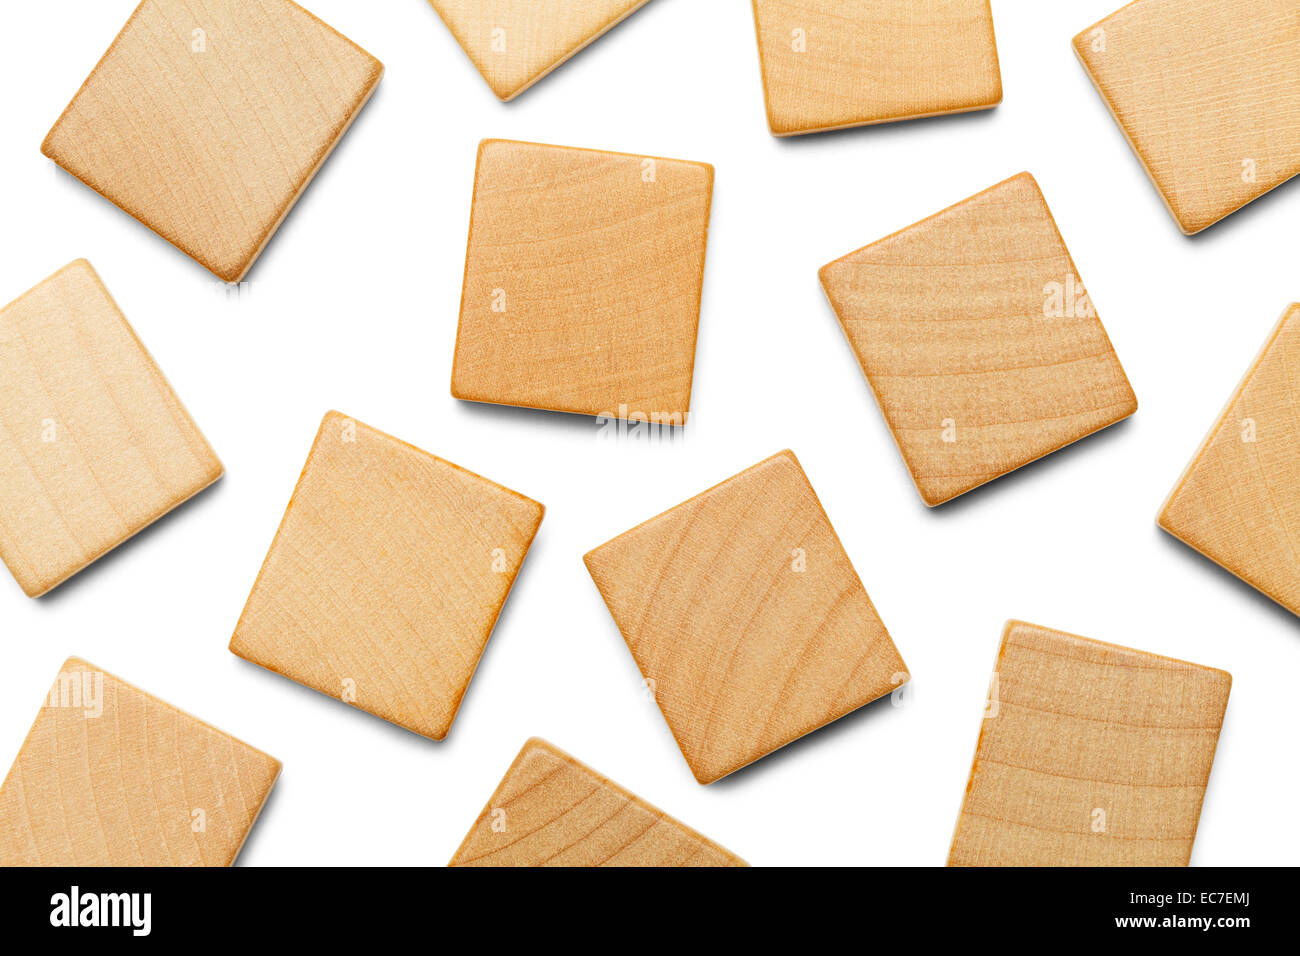 Random Wood Scrabble Pieces With Copy Space Isolated On White Background